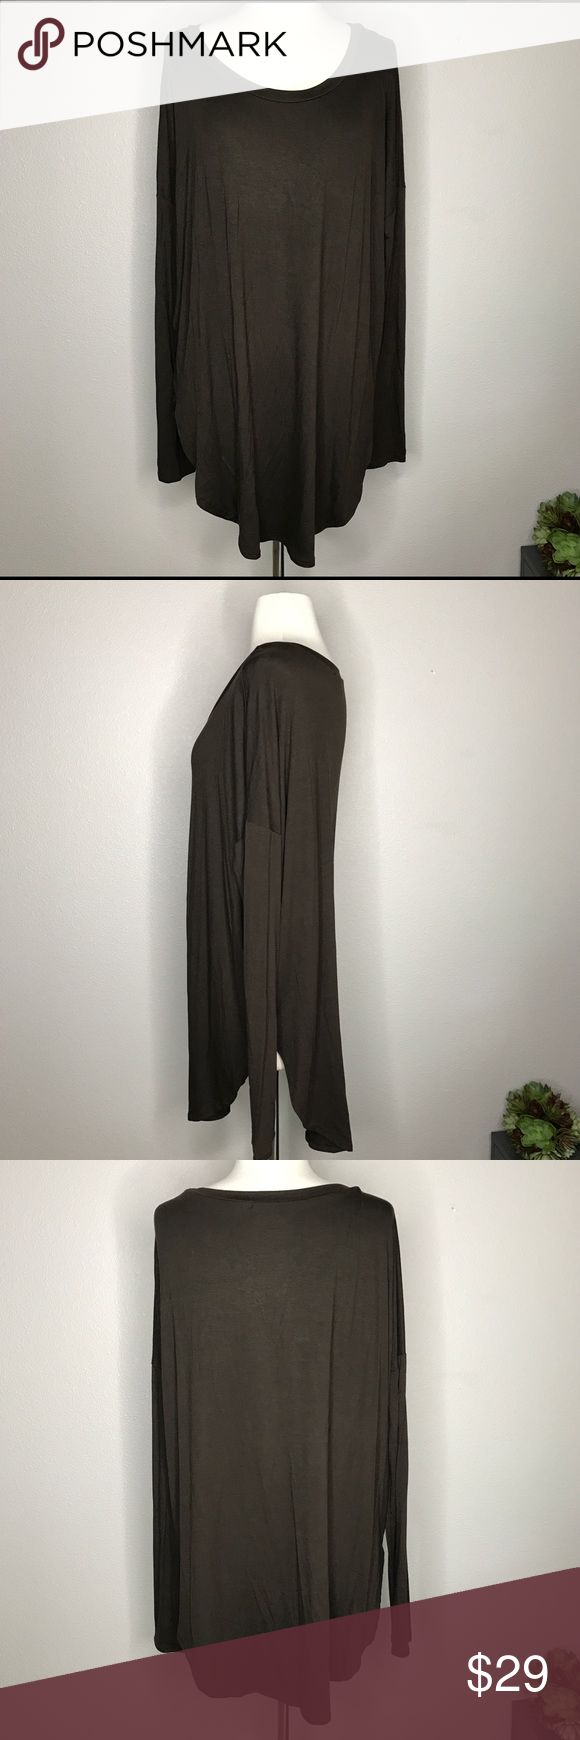 """Great Tunic For Leggings! Super soft fabric, roomy tunic with long sleeves - will go great with leggings! Runs large. Bust measurement 27"""" laying flat; length 30"""" mockingbird + poppy Tops Tunics"""